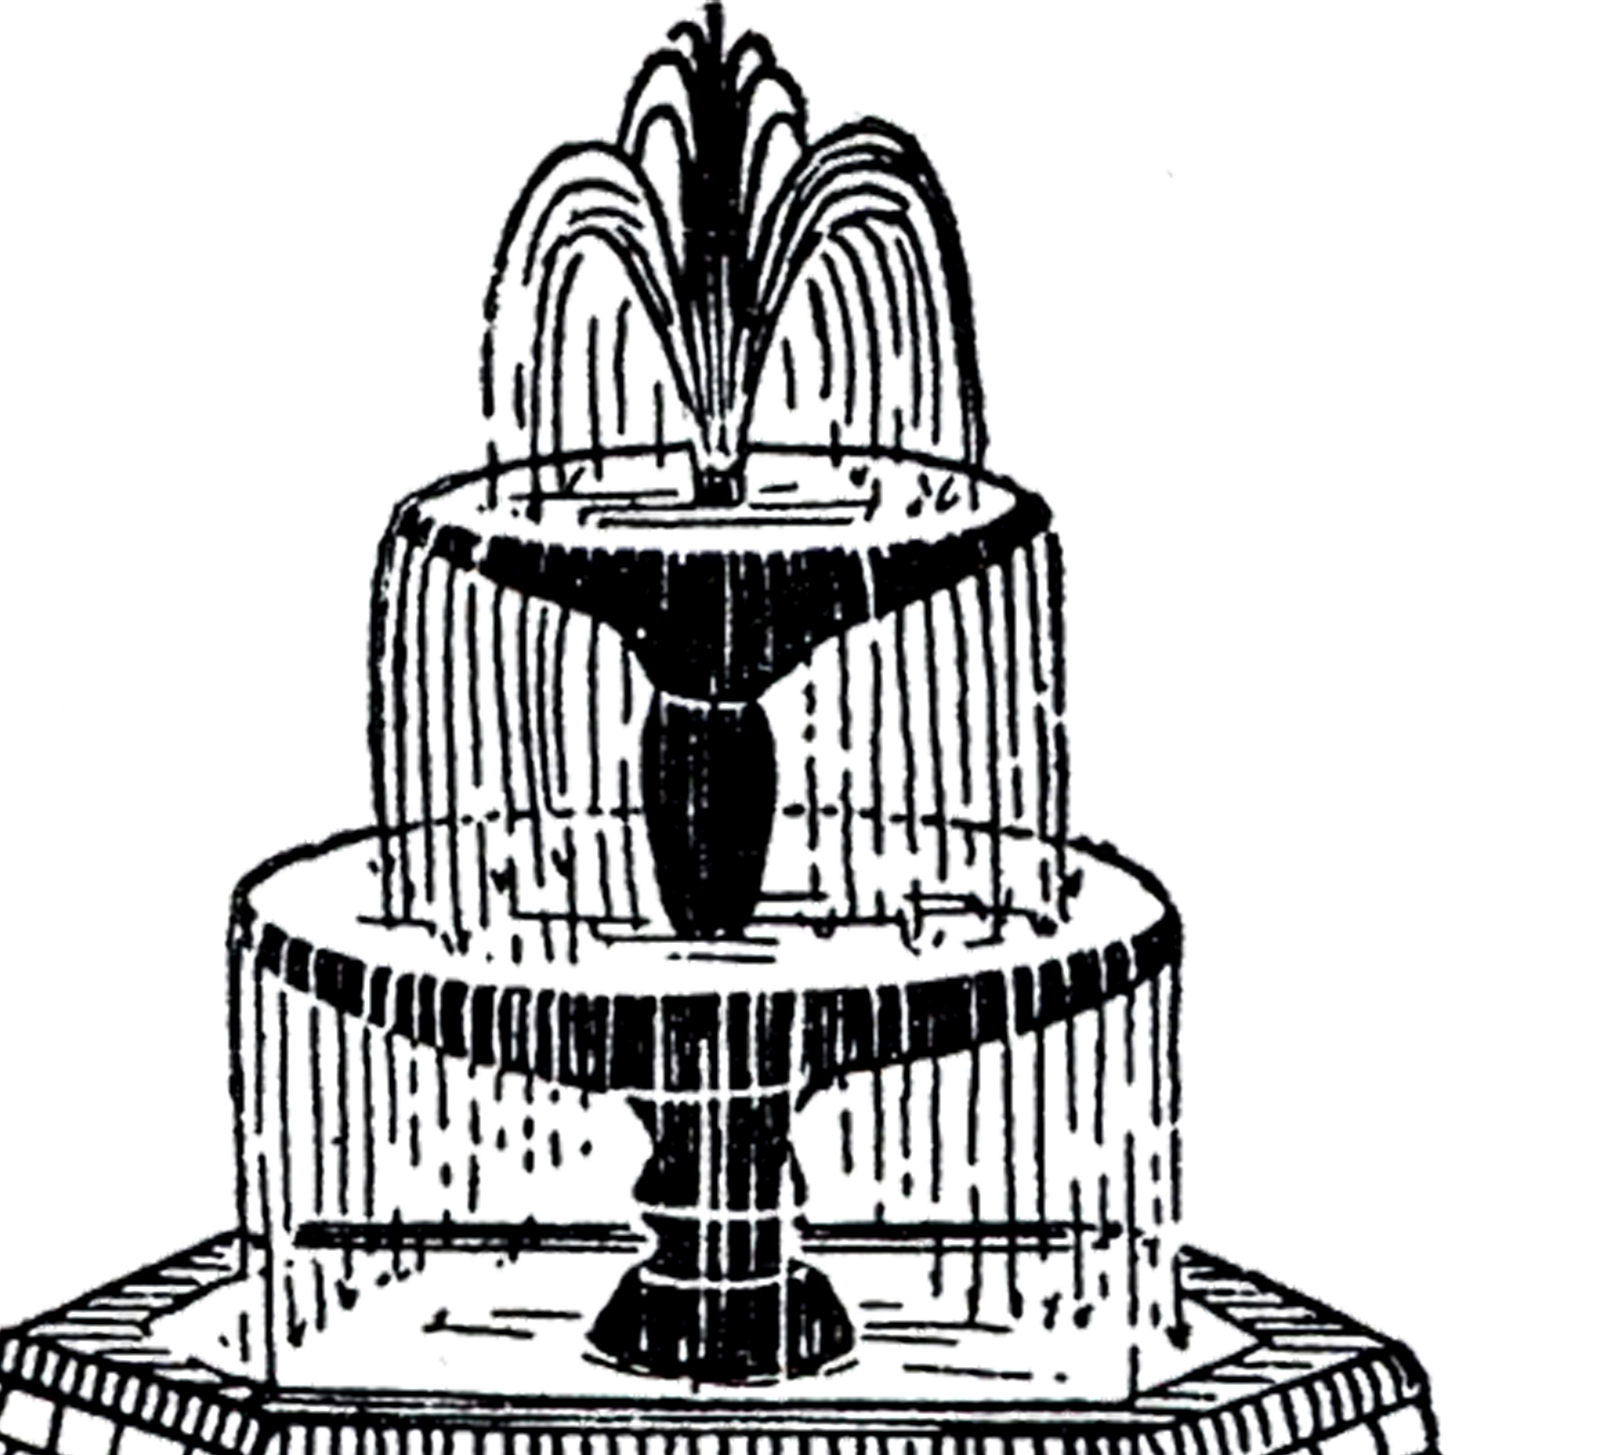 Fountain clipart #13, Download drawings